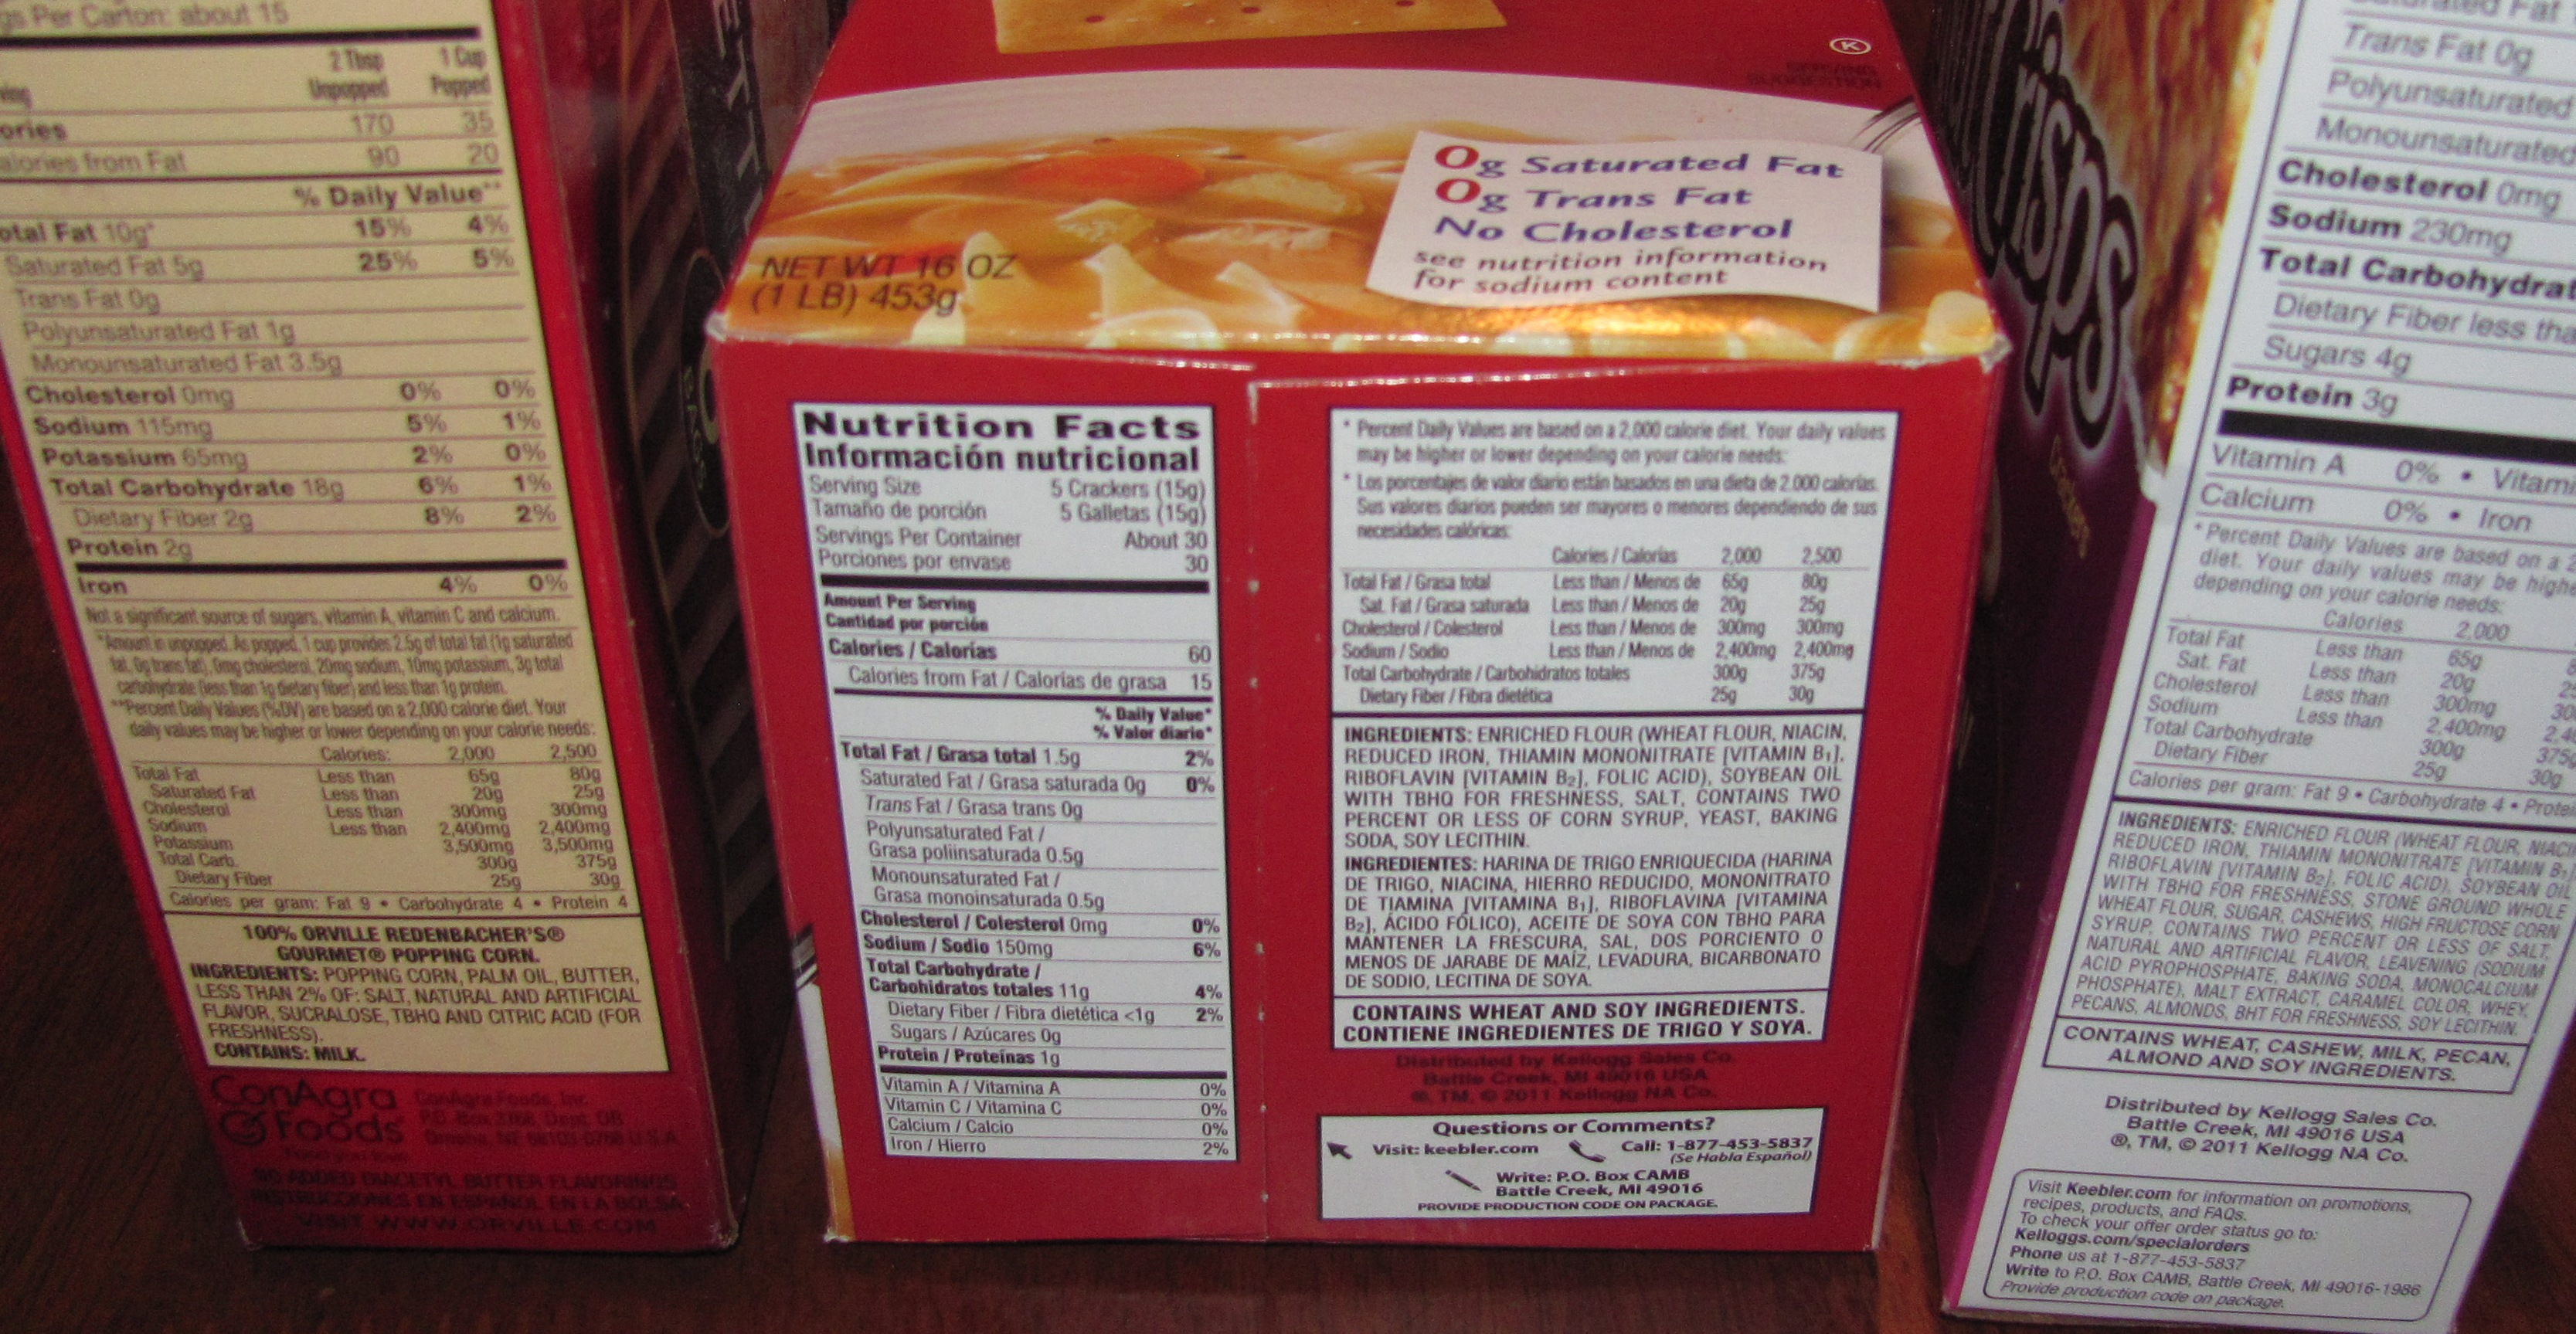 What Is Bthq Bht Amp Bha Food Safe Just Ask The Fda